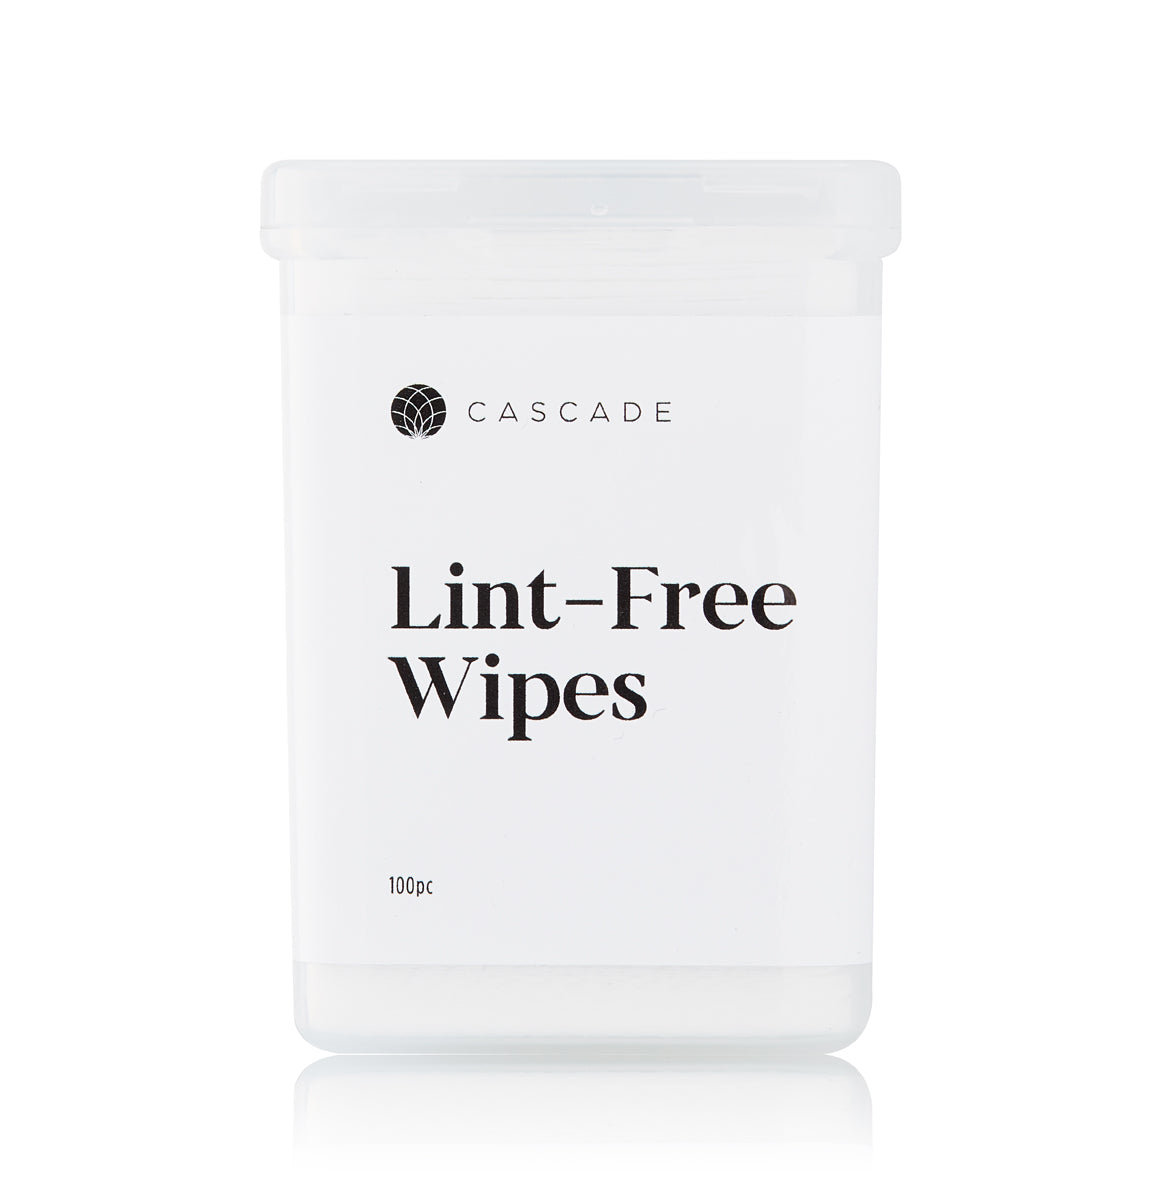 Lint-free Wipes